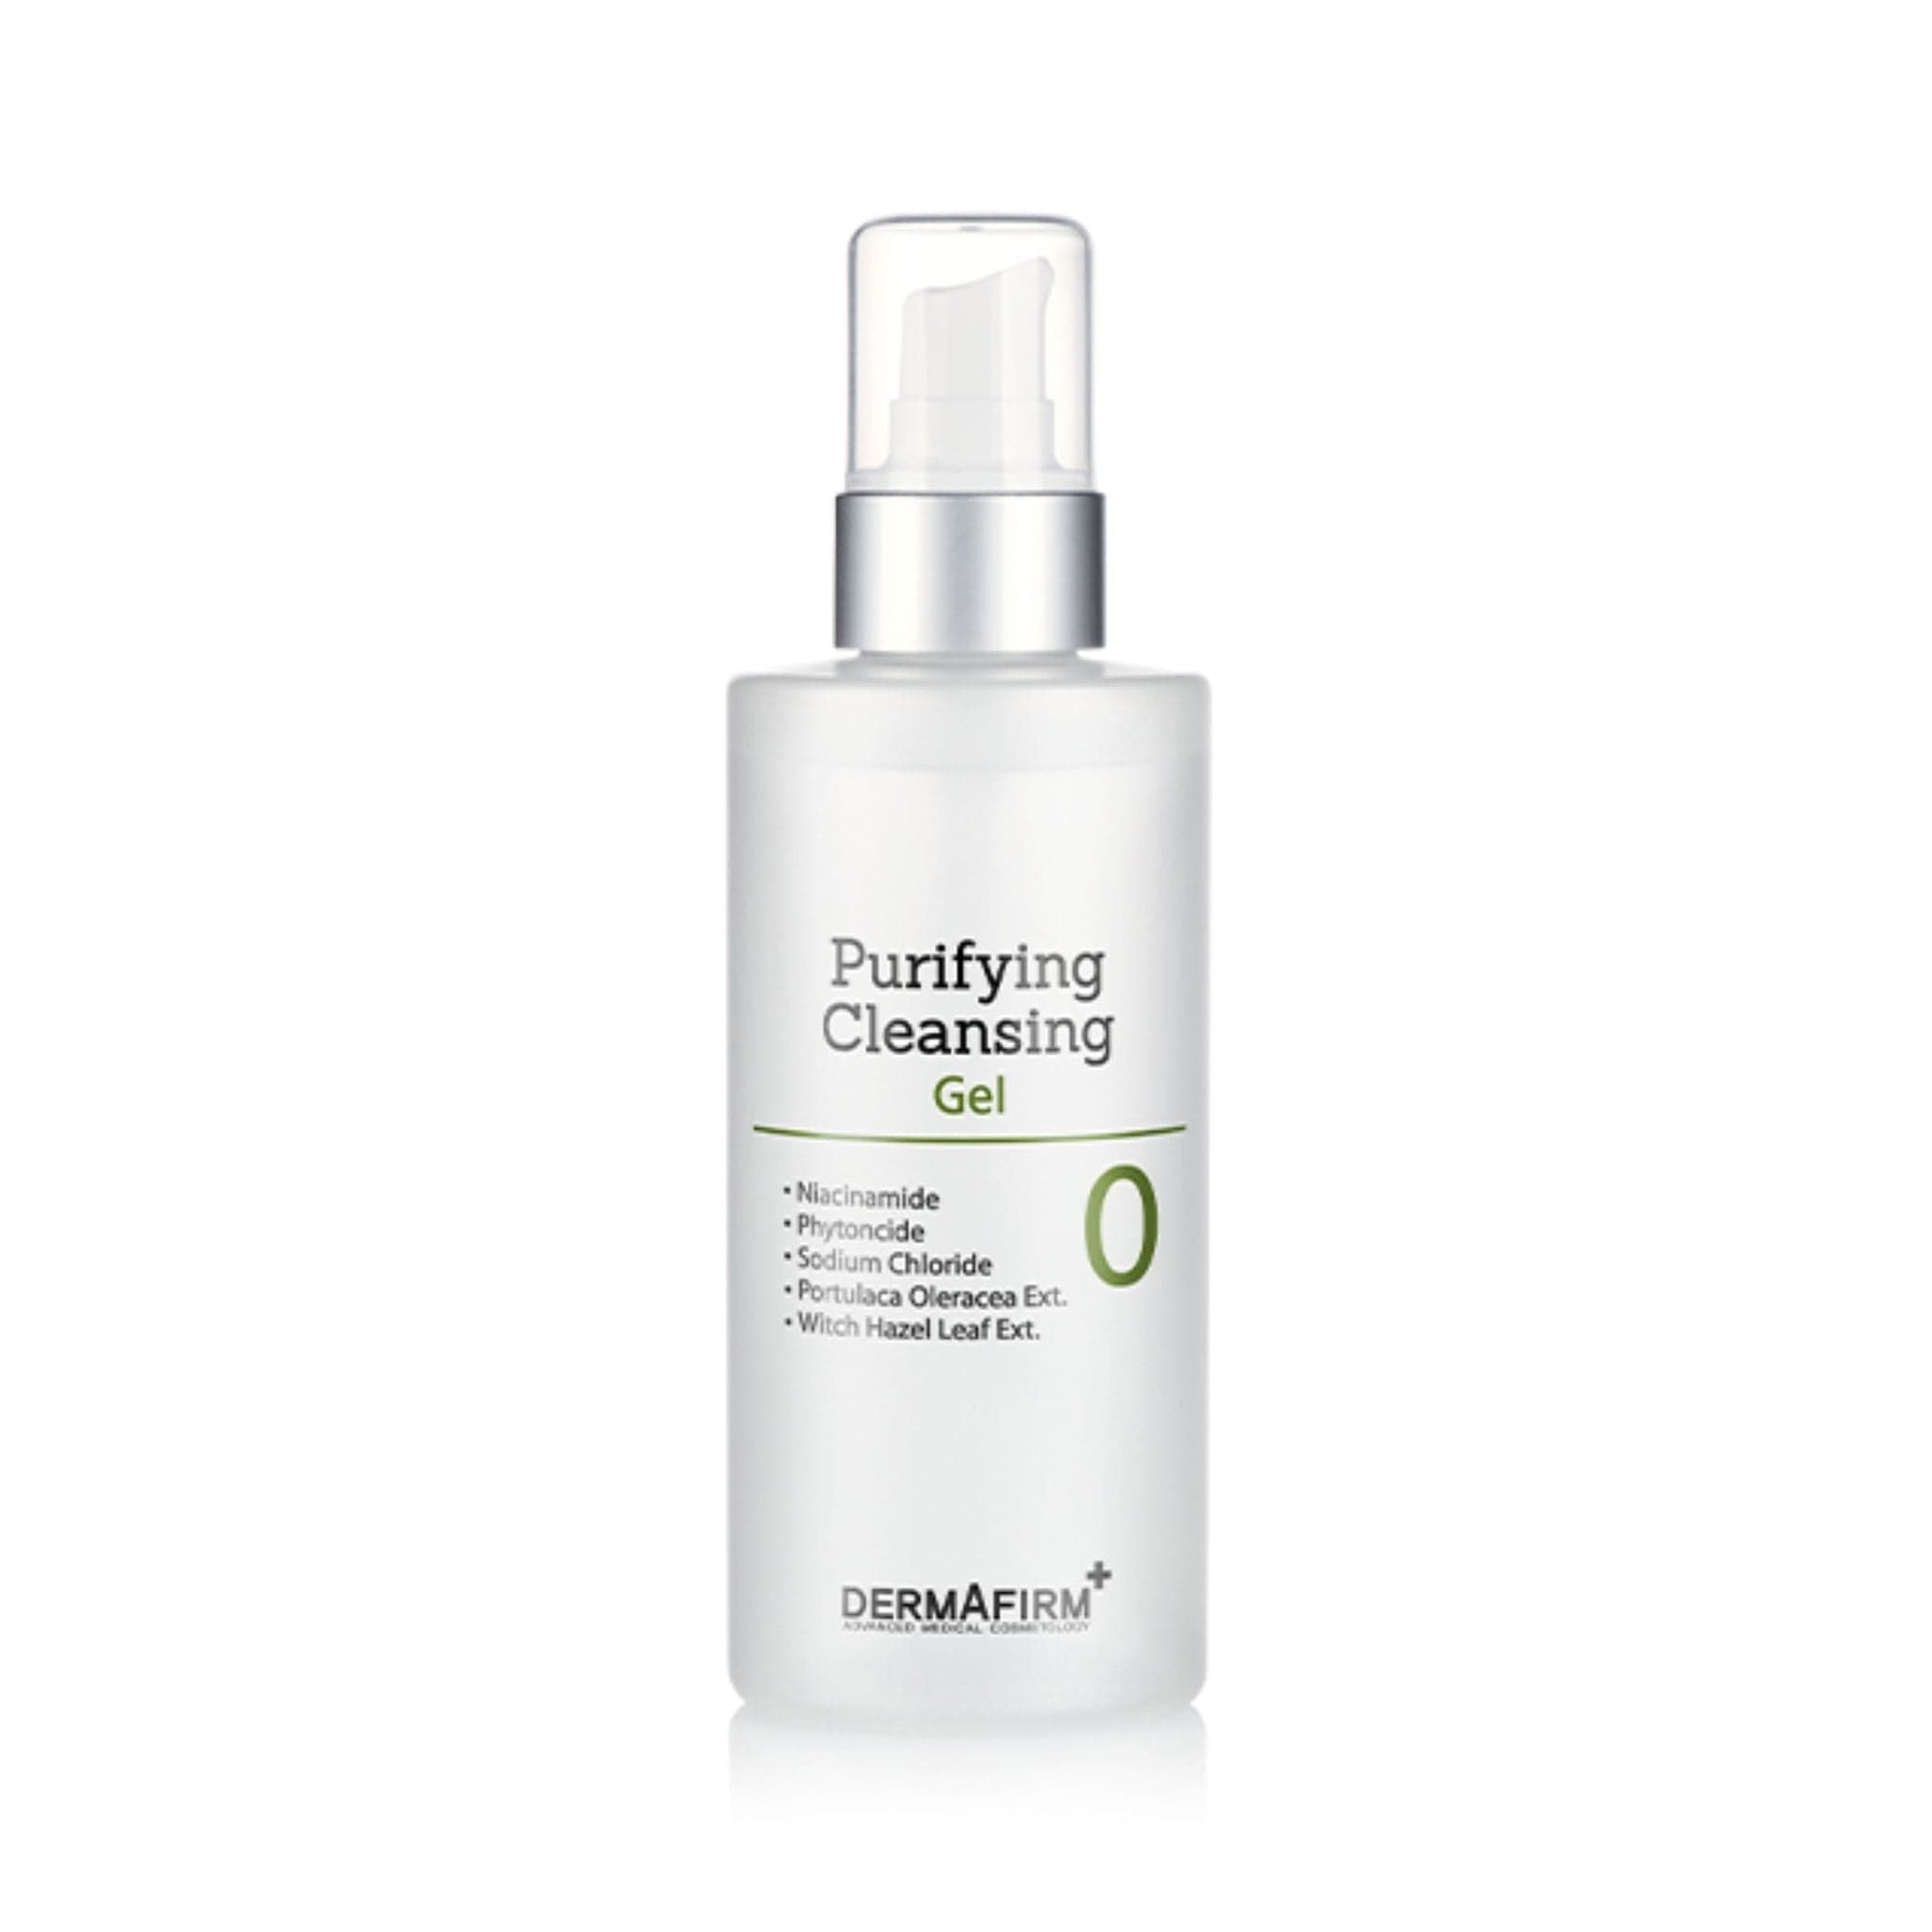 Purifying Cleansing Gel - 200ml